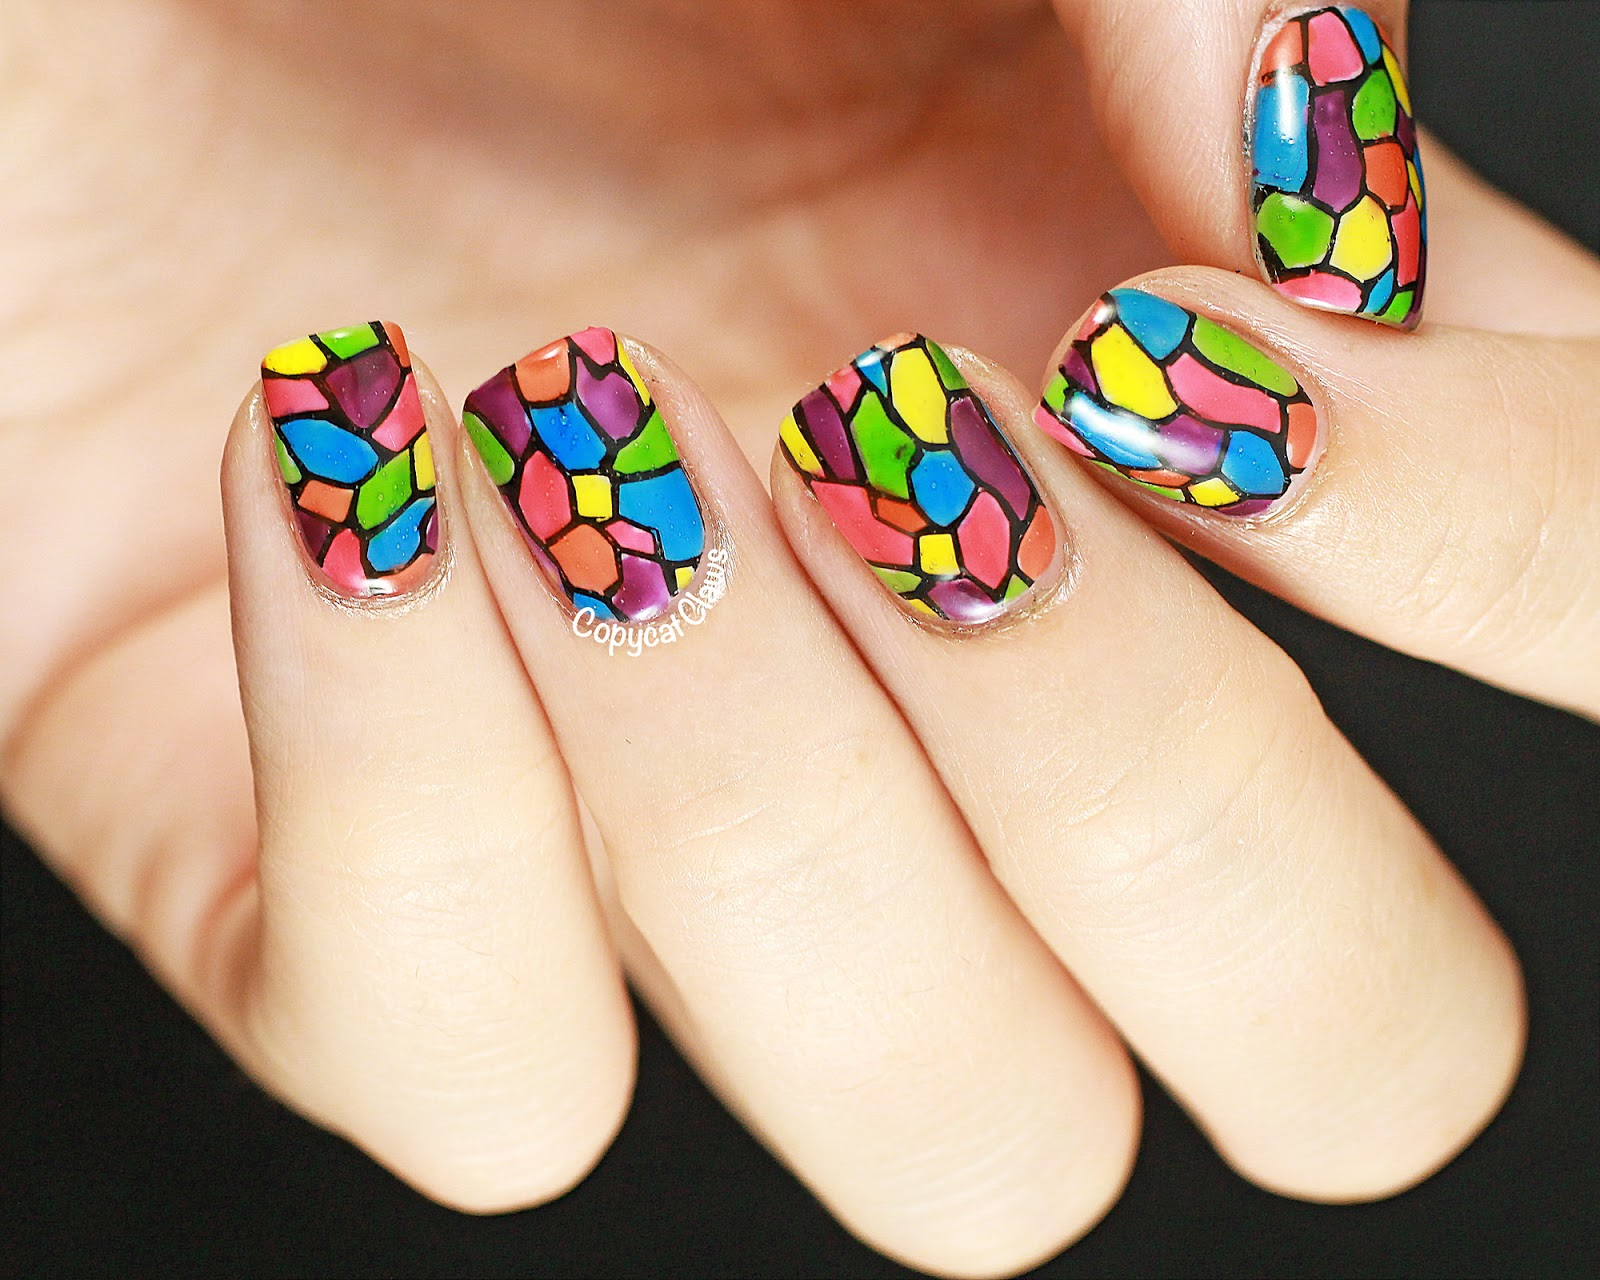 Copycat Claws: Stained Glass Nail Art